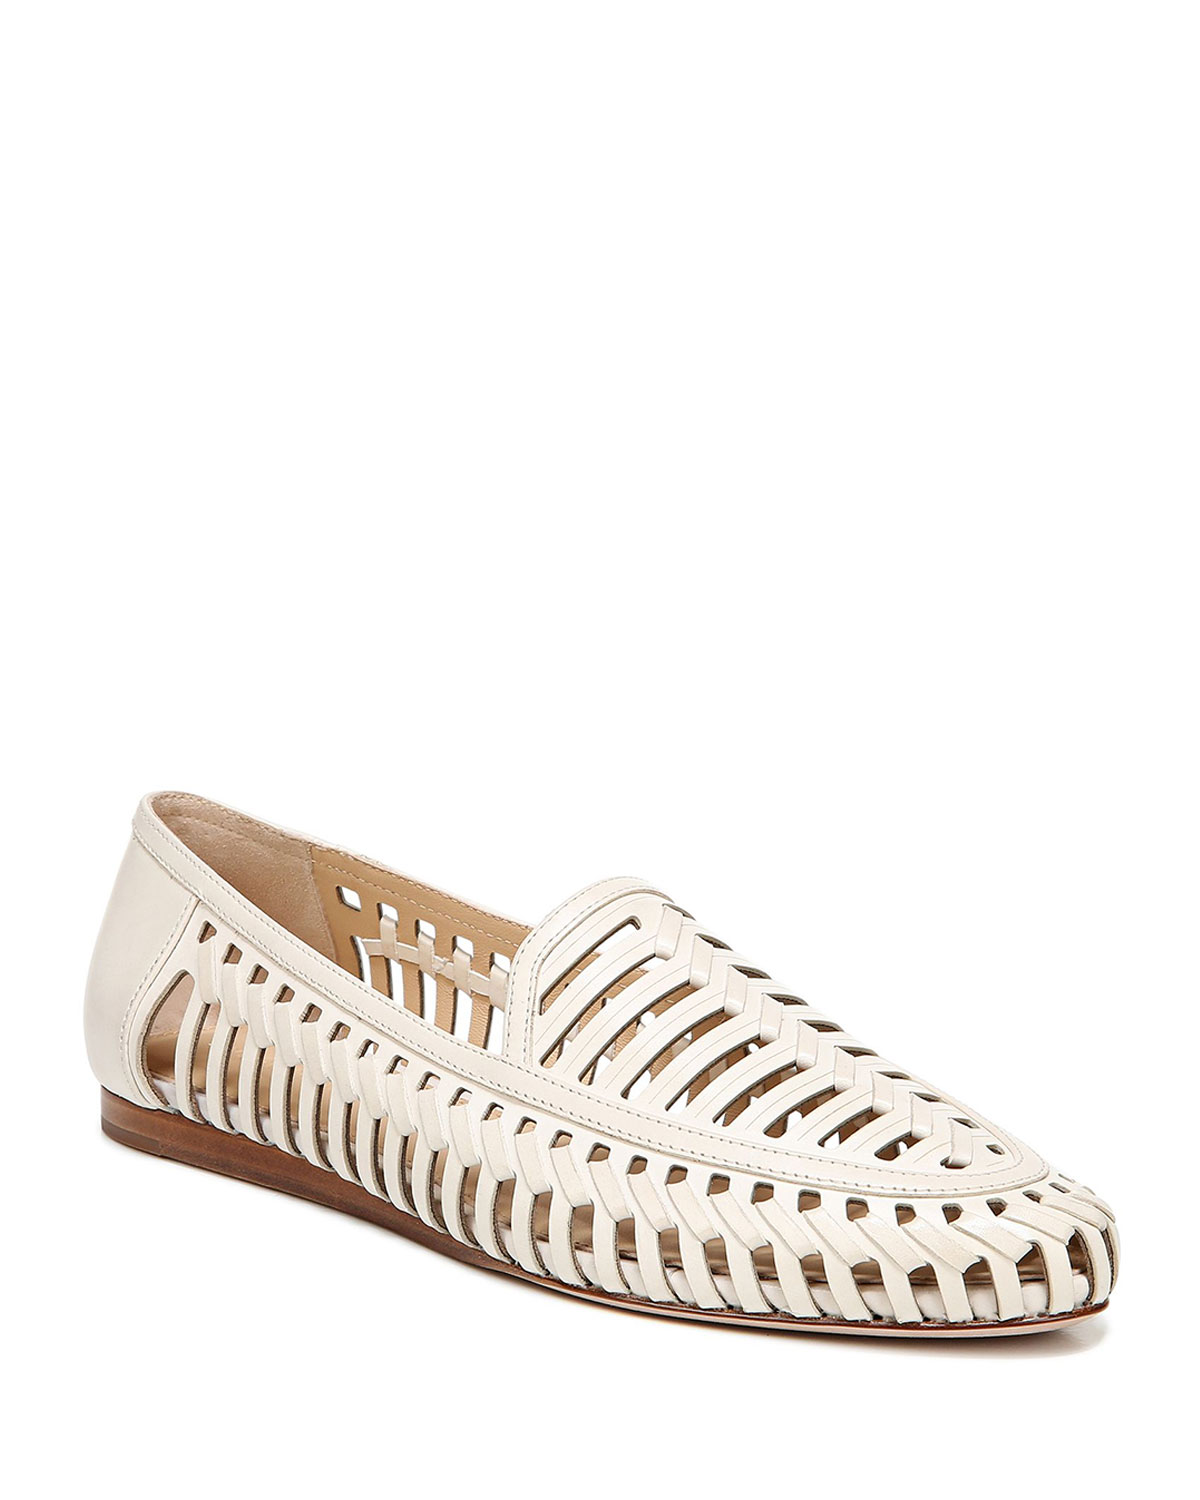 Greece Woven Leather Flat Loafers